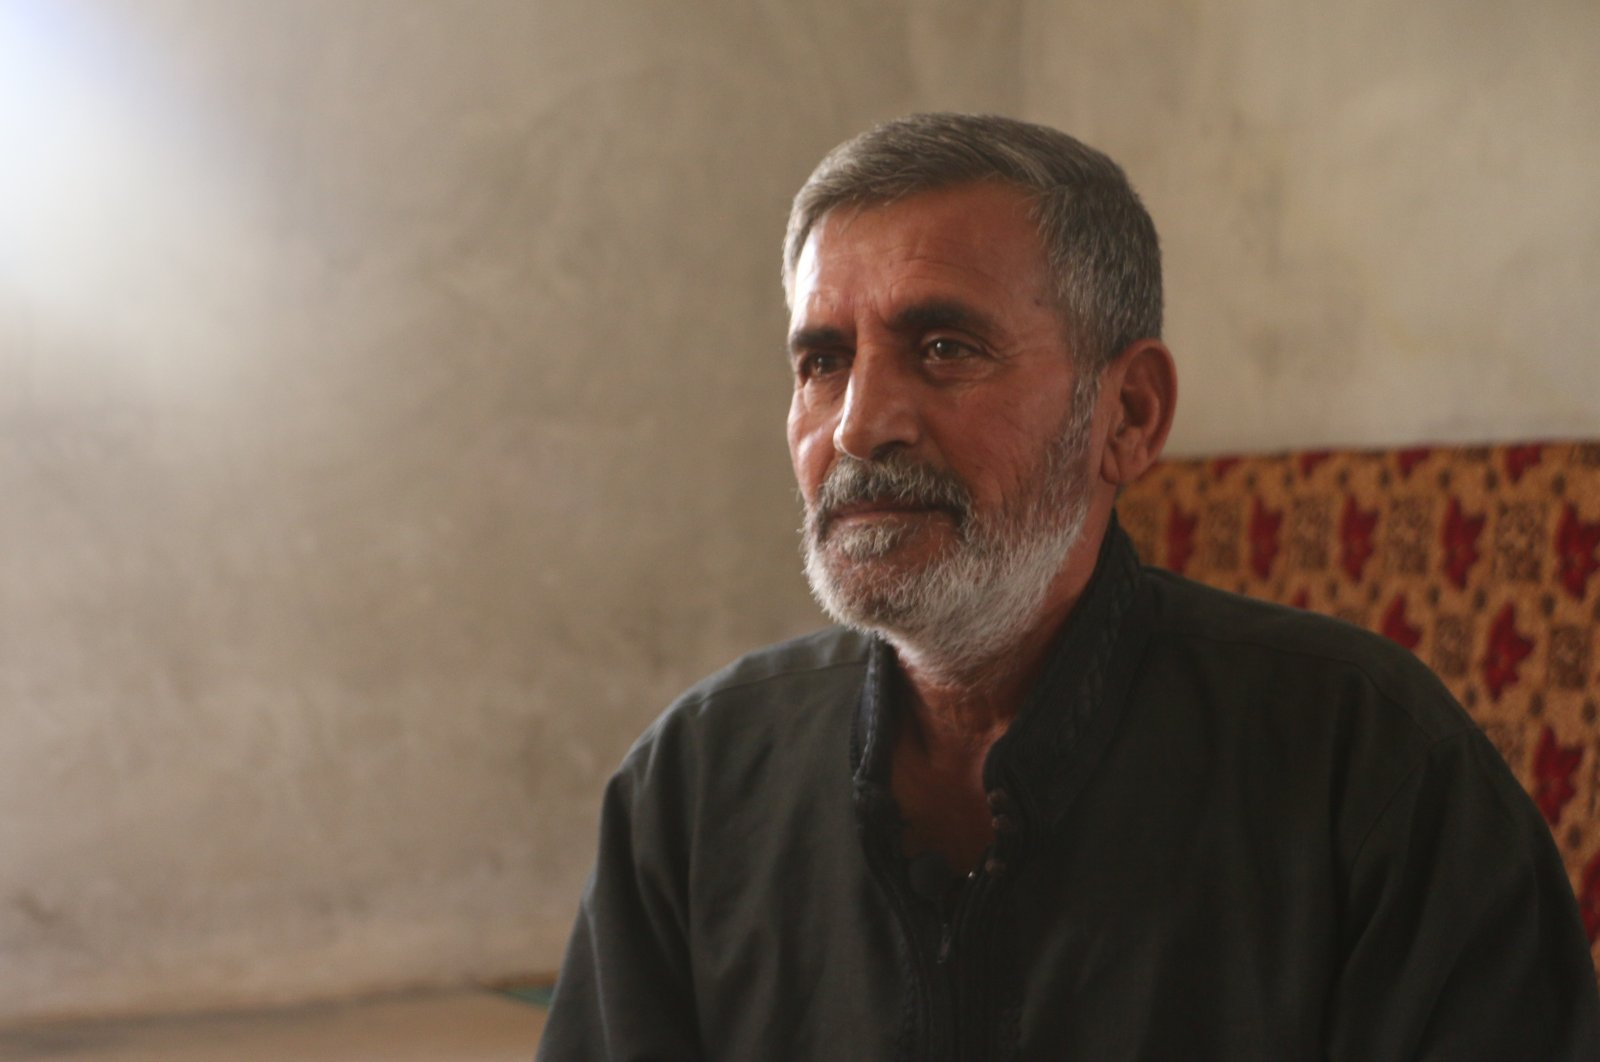 Muhammed Rahimo, 56, was jailed at various Syrian regime prisons for over five years, despite being not guilty of any crime. (AA)